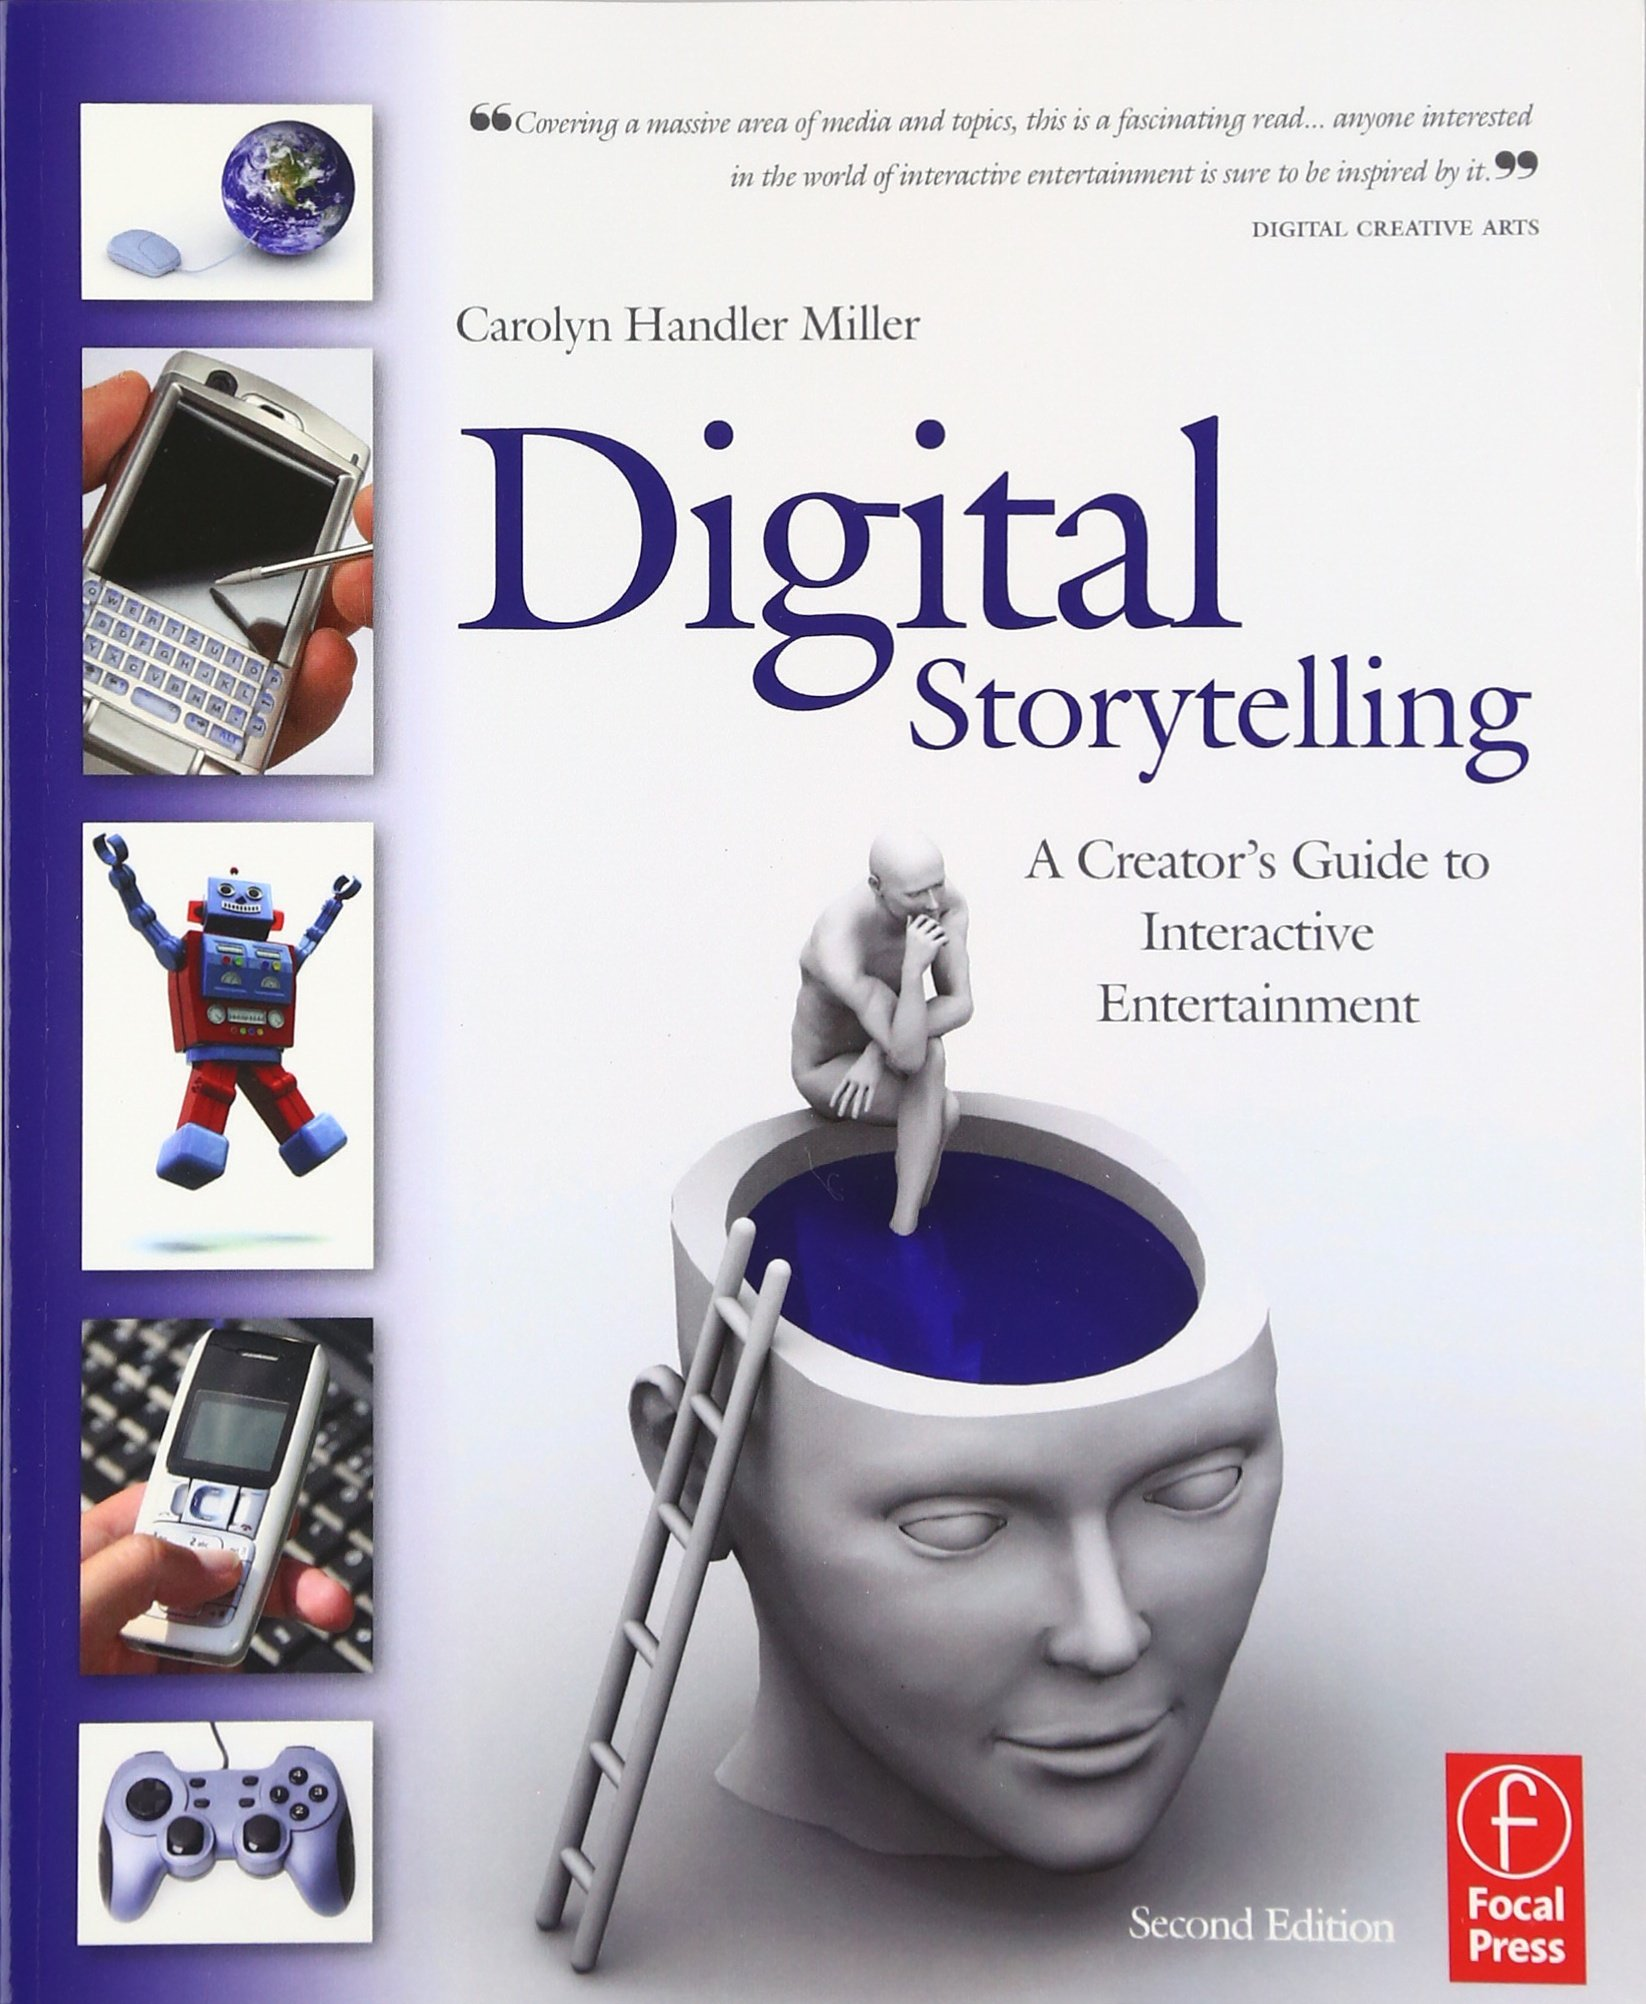 Digital Storytelling: A creator's guide to interactive entertainment:  Amazon.co.uk: Carolyn Handler Miller: 9780240809595: Books